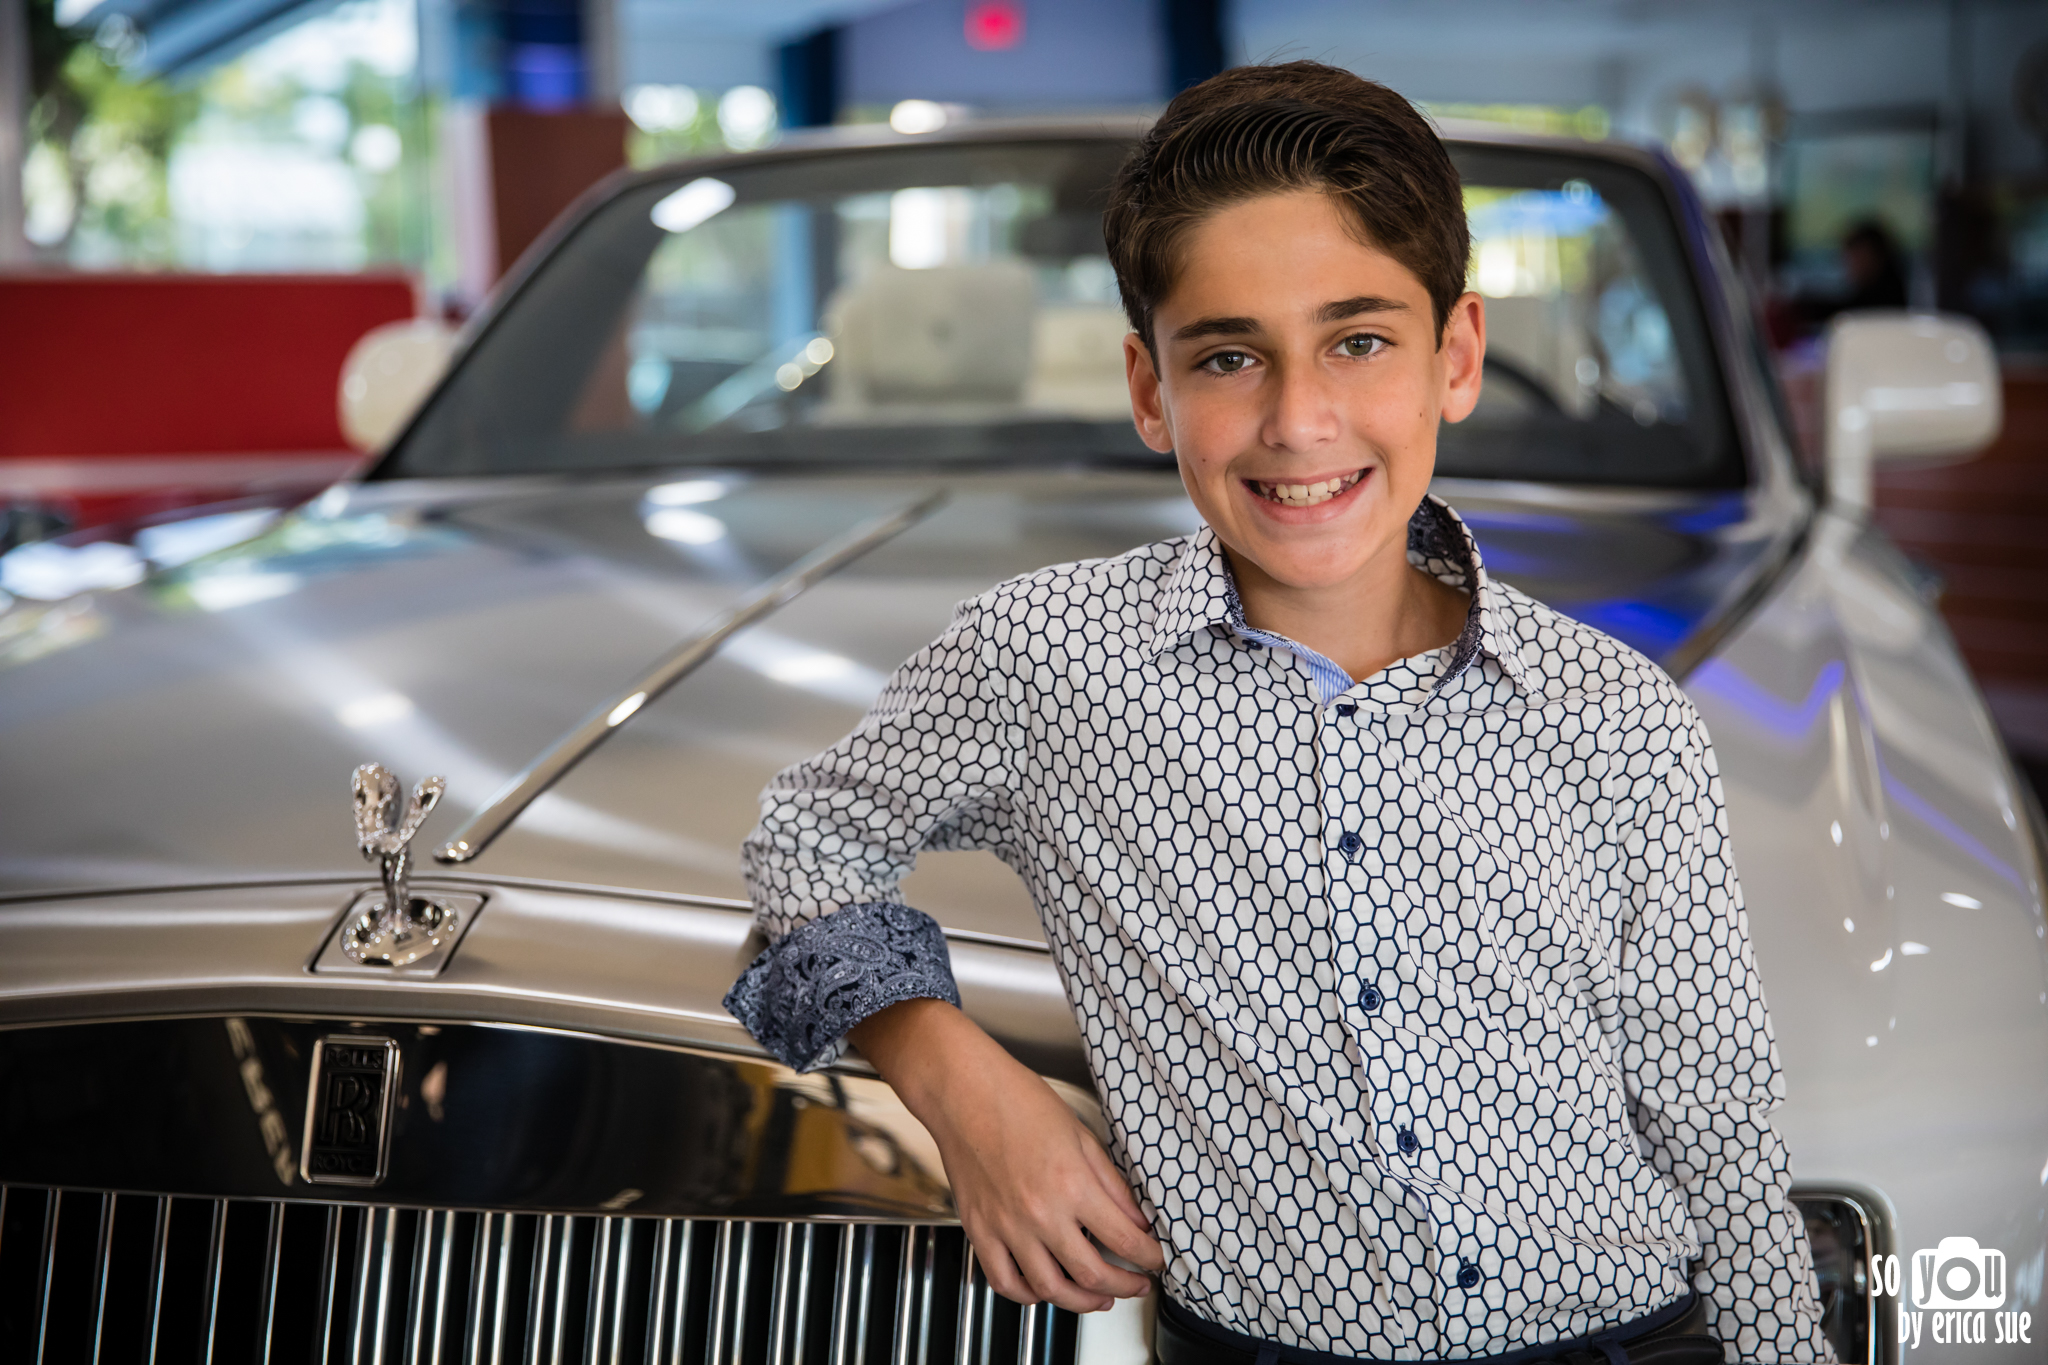 so-you-by-erica-sue-mitzvah-photographer-collection-luxury-car-ft-lauderdale-5065.jpg